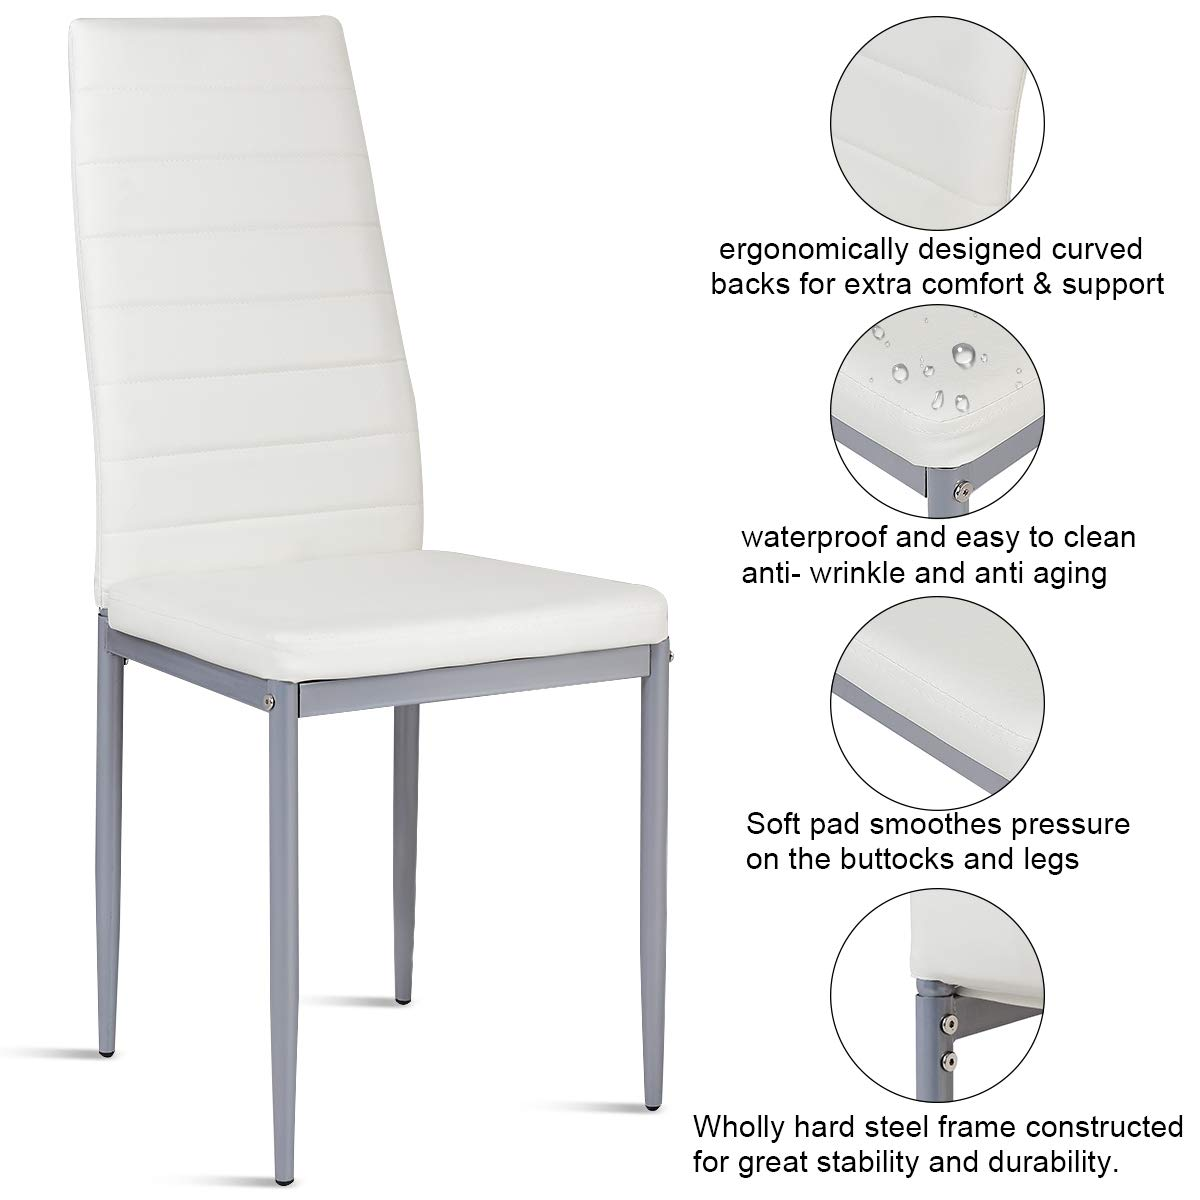 Giantex Set of 4 PU Leather Dining Side Chairs with Padded Seat Foot Cap Protection Stable Frame Heavy Duty Elegant Ergonomically High Back Design for Kitchen Dining Room Home Furniture, White by Giantex (Image #6)